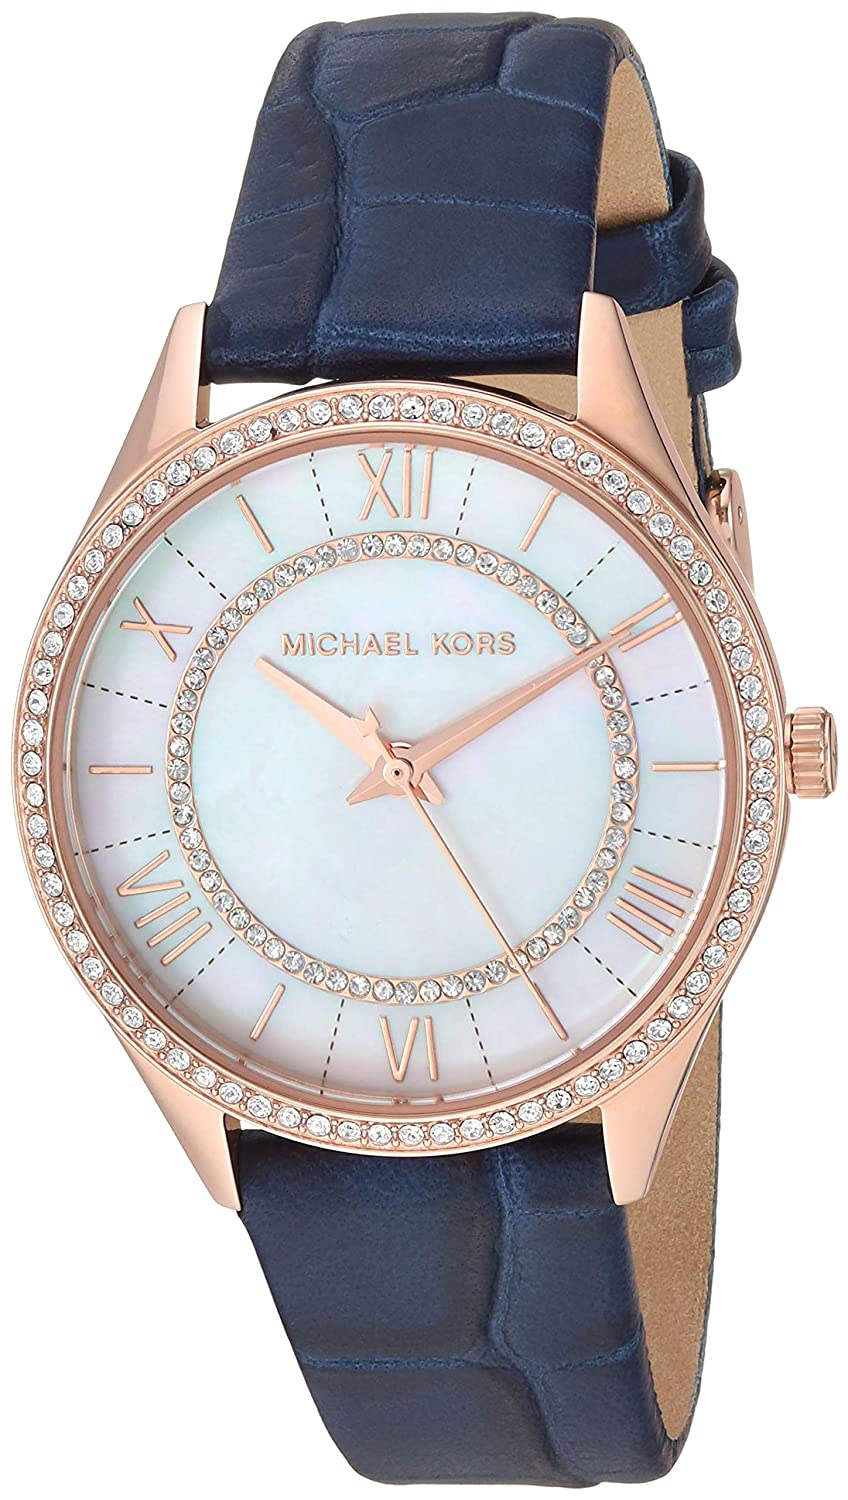 51058bda69cc Buy Michael Kors Lauryn Analog White Dial Women s Watch - MK2757 Online at  Low Prices in India - Amazon.in